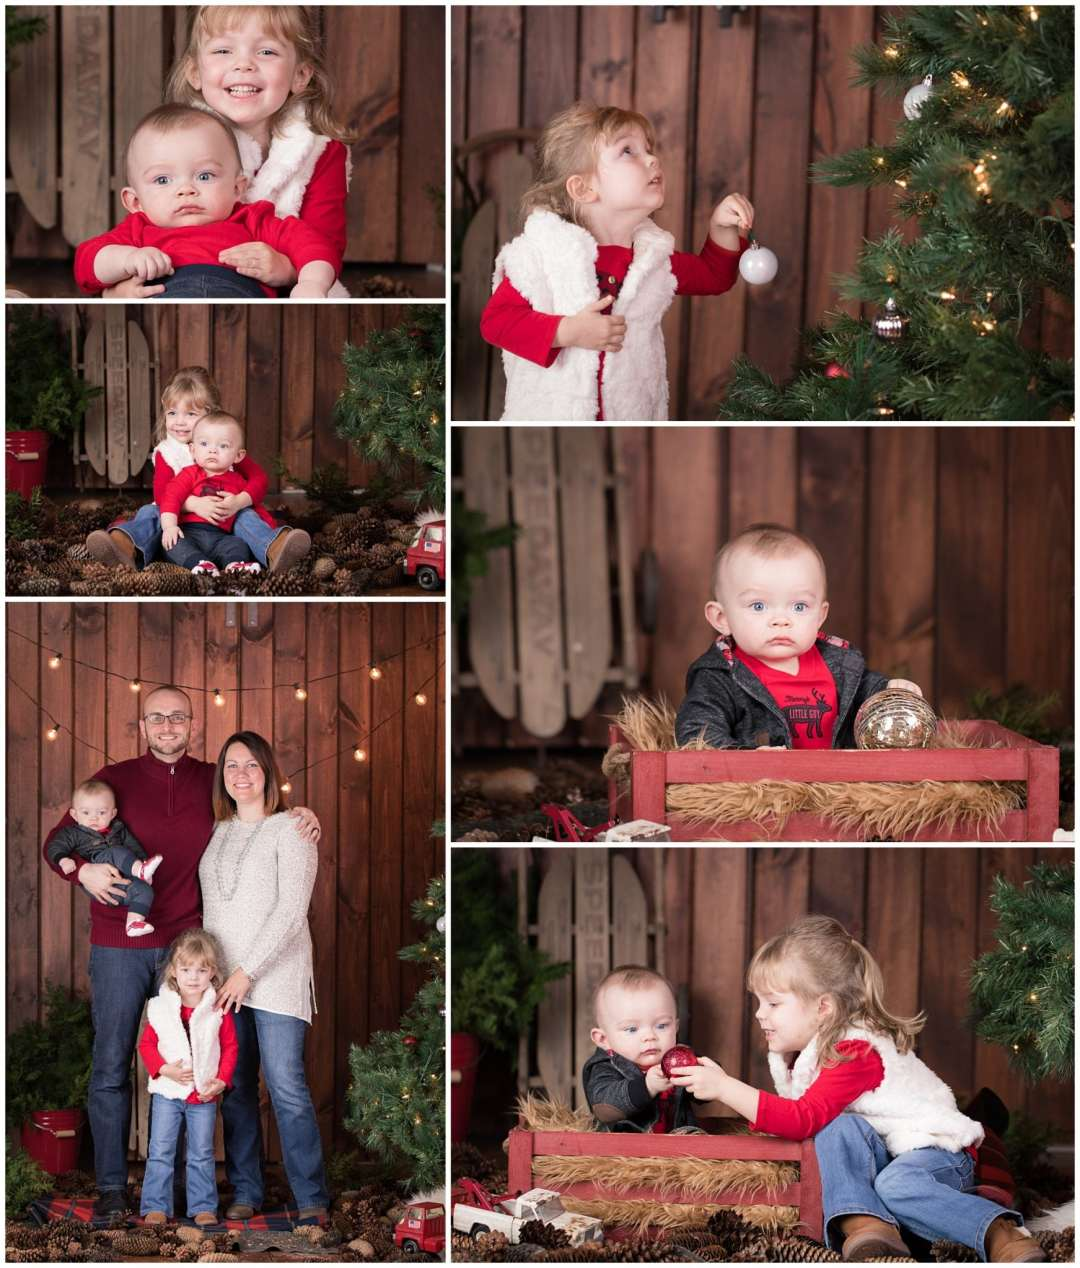 ChristmasMiniSessions_family-baby-kids_Berks-County-Reading-PA_0031.jpg